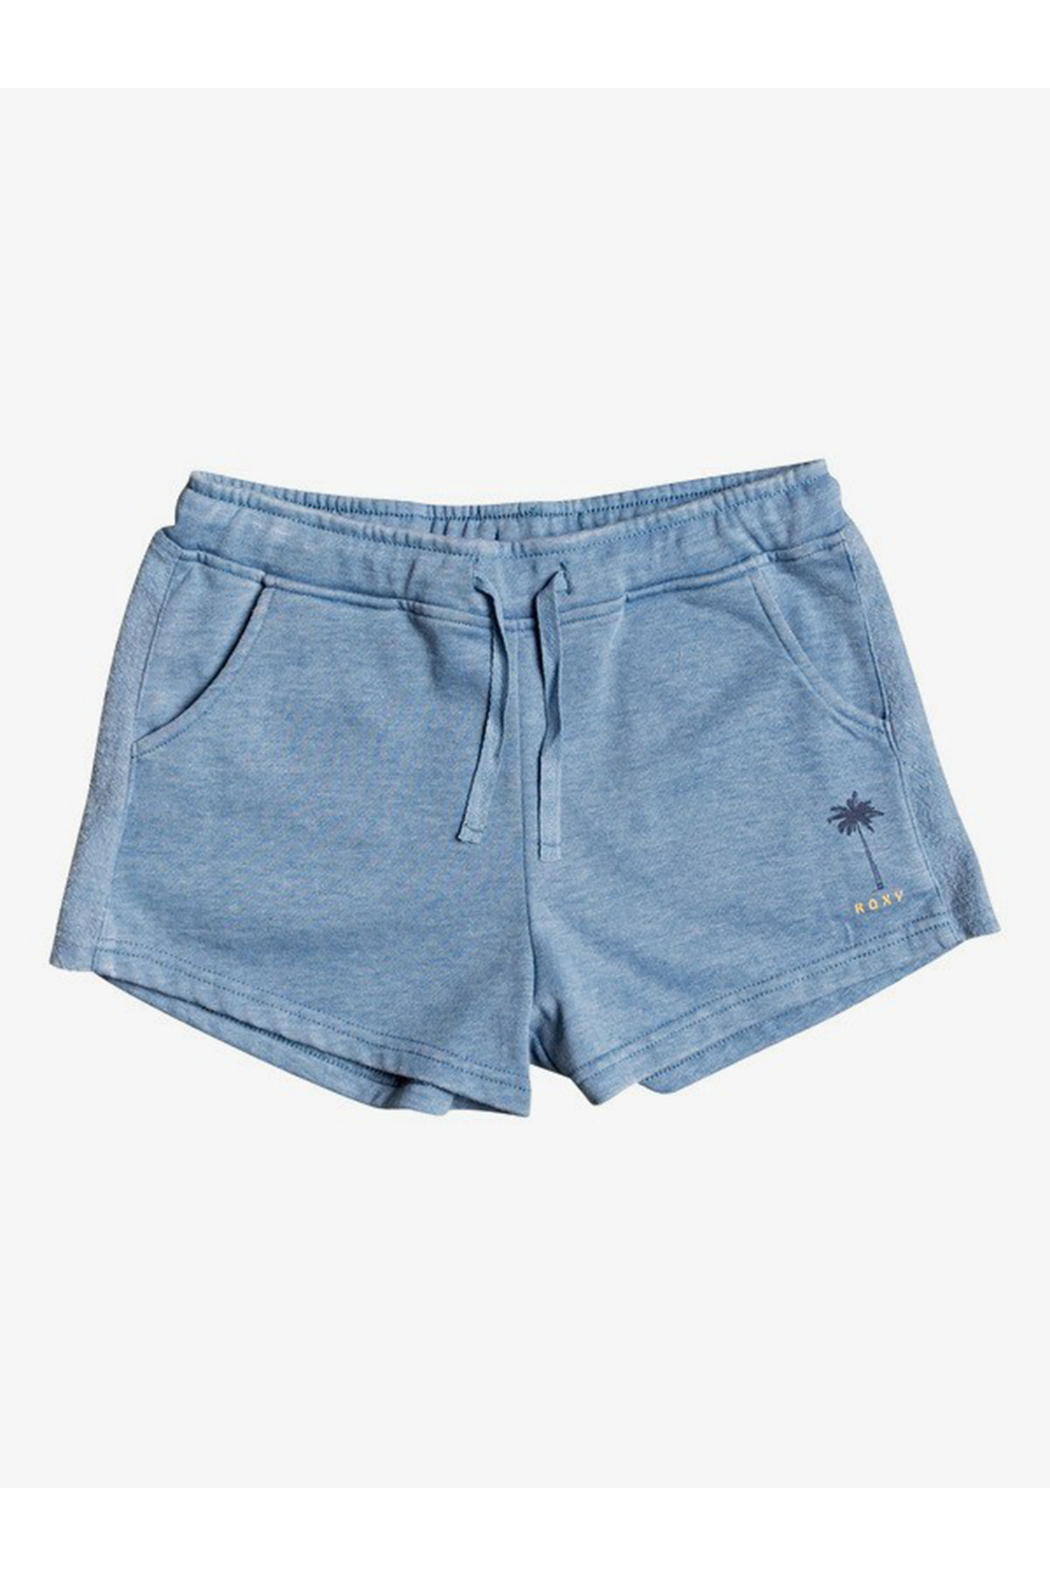 Roxy  The Middle B Shorts - Main Image